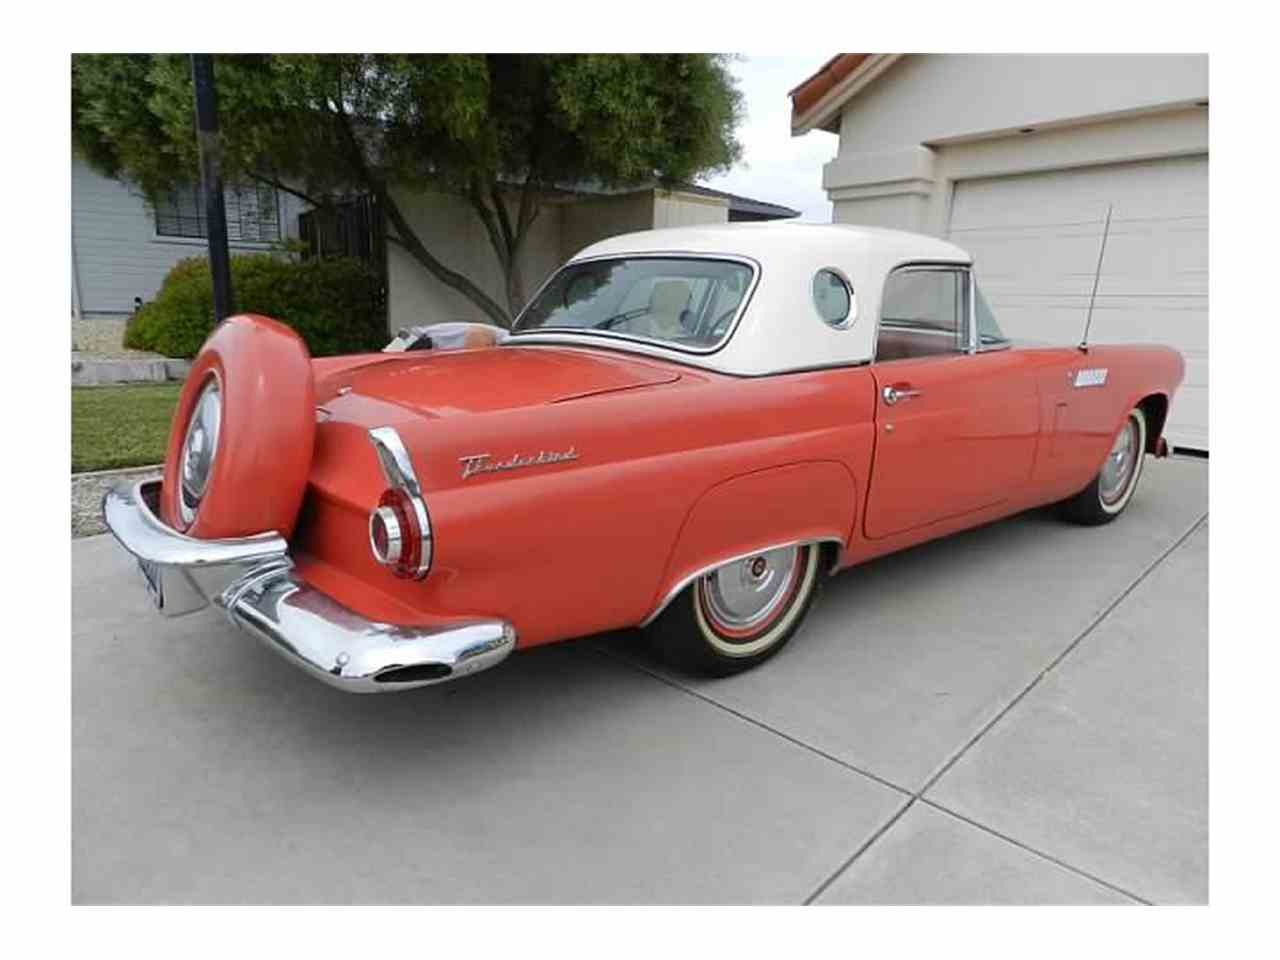 Large Picture of 1956 Ford Thunderbird located in California Offered by a Private Seller - C1JY